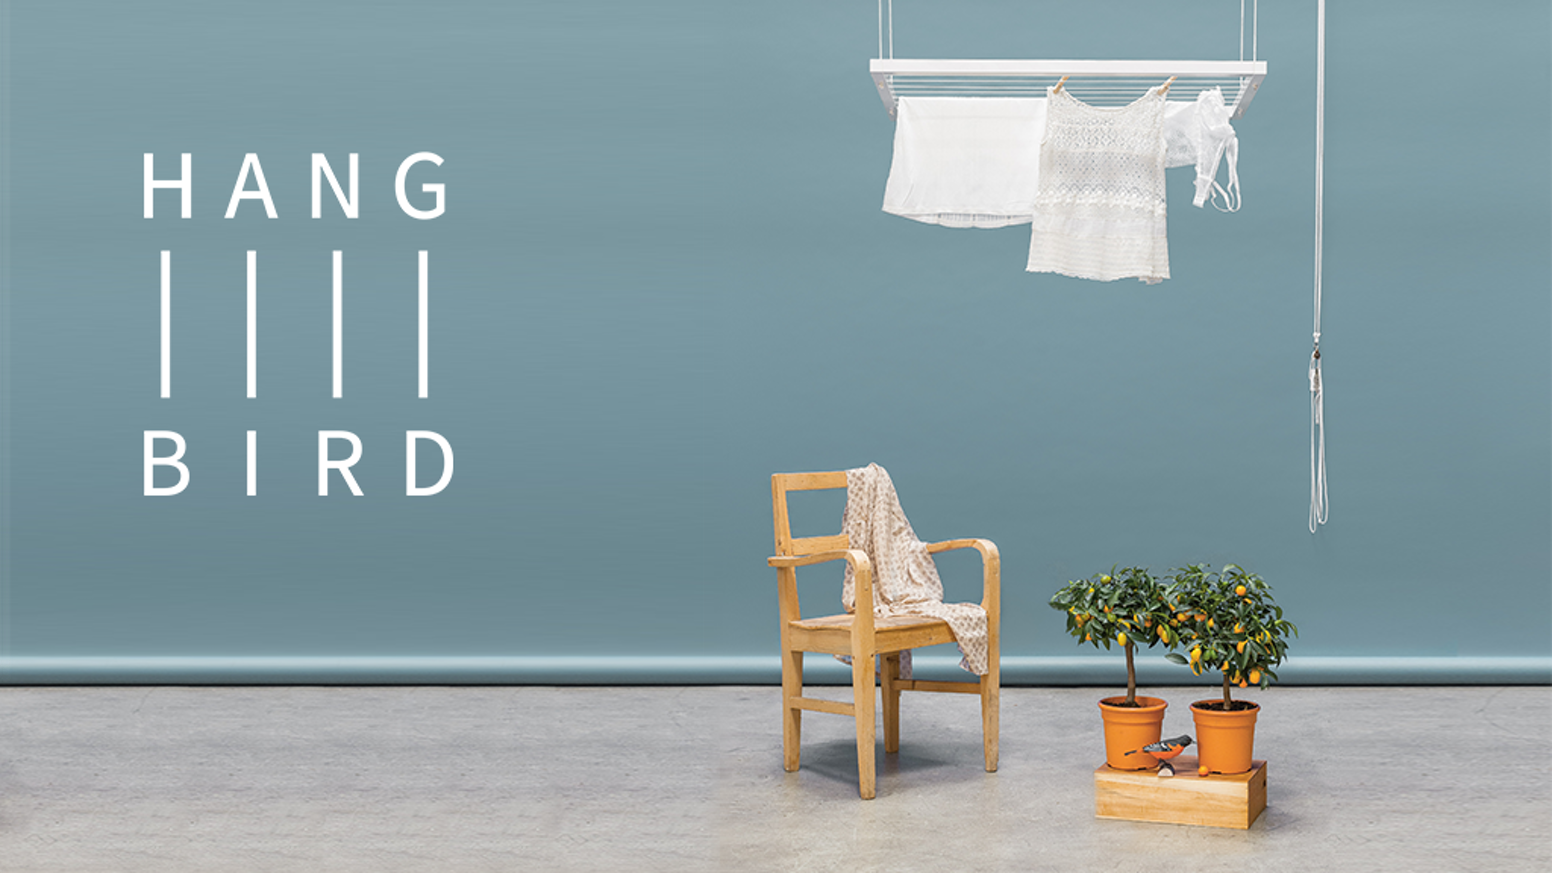 Hangbird lifts your clothes away for drying, helps save resources and is made of high quality components by people with special needs.